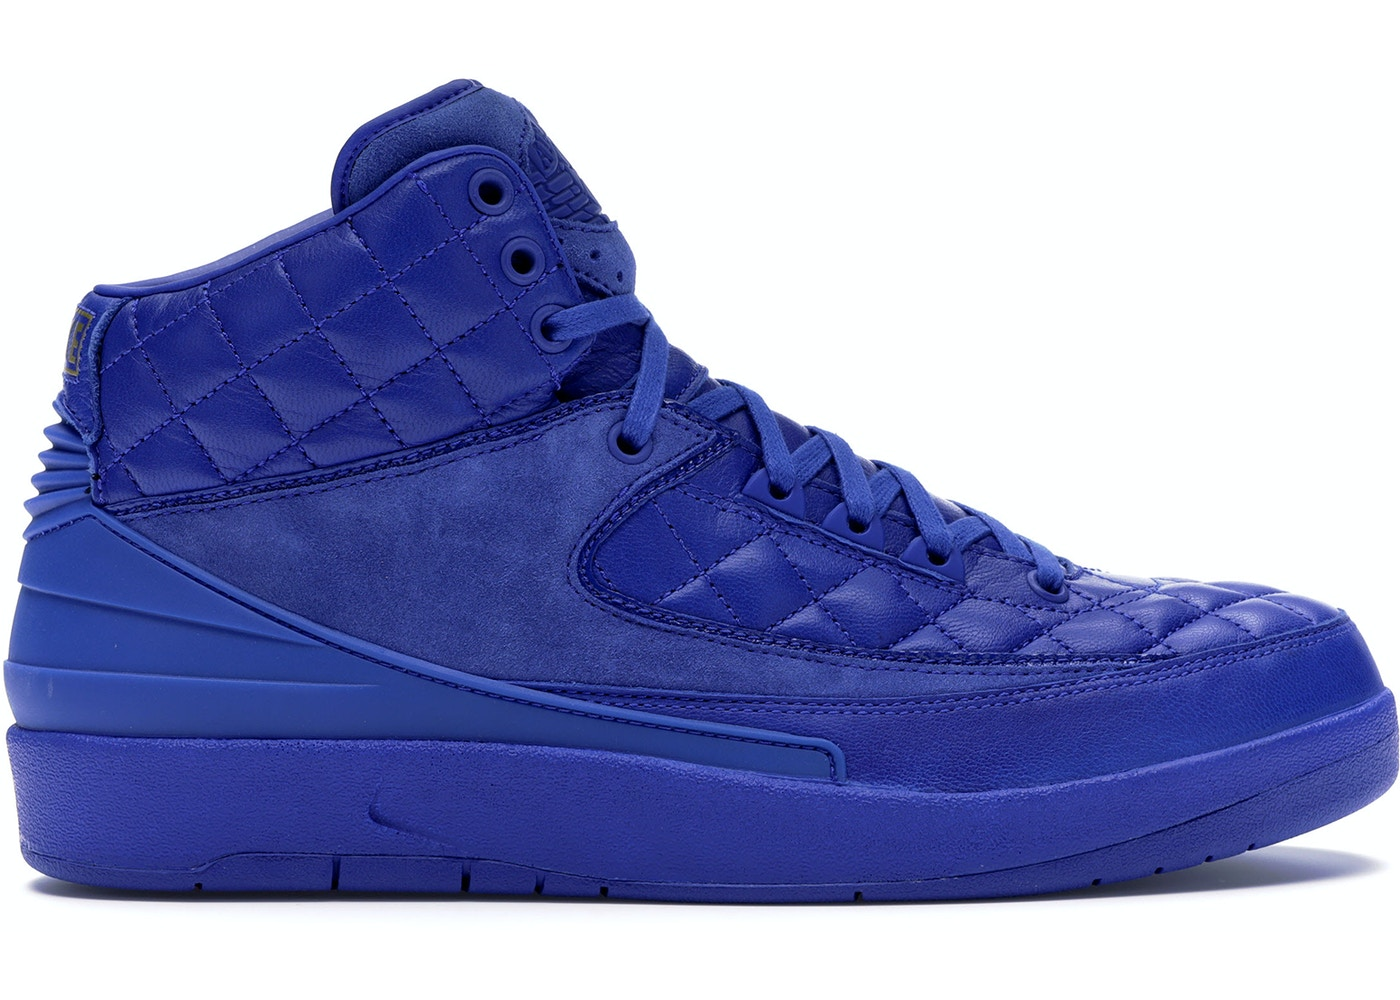 733120b8144480 Jordan 2 Retro Just Don Blue - 717170-405